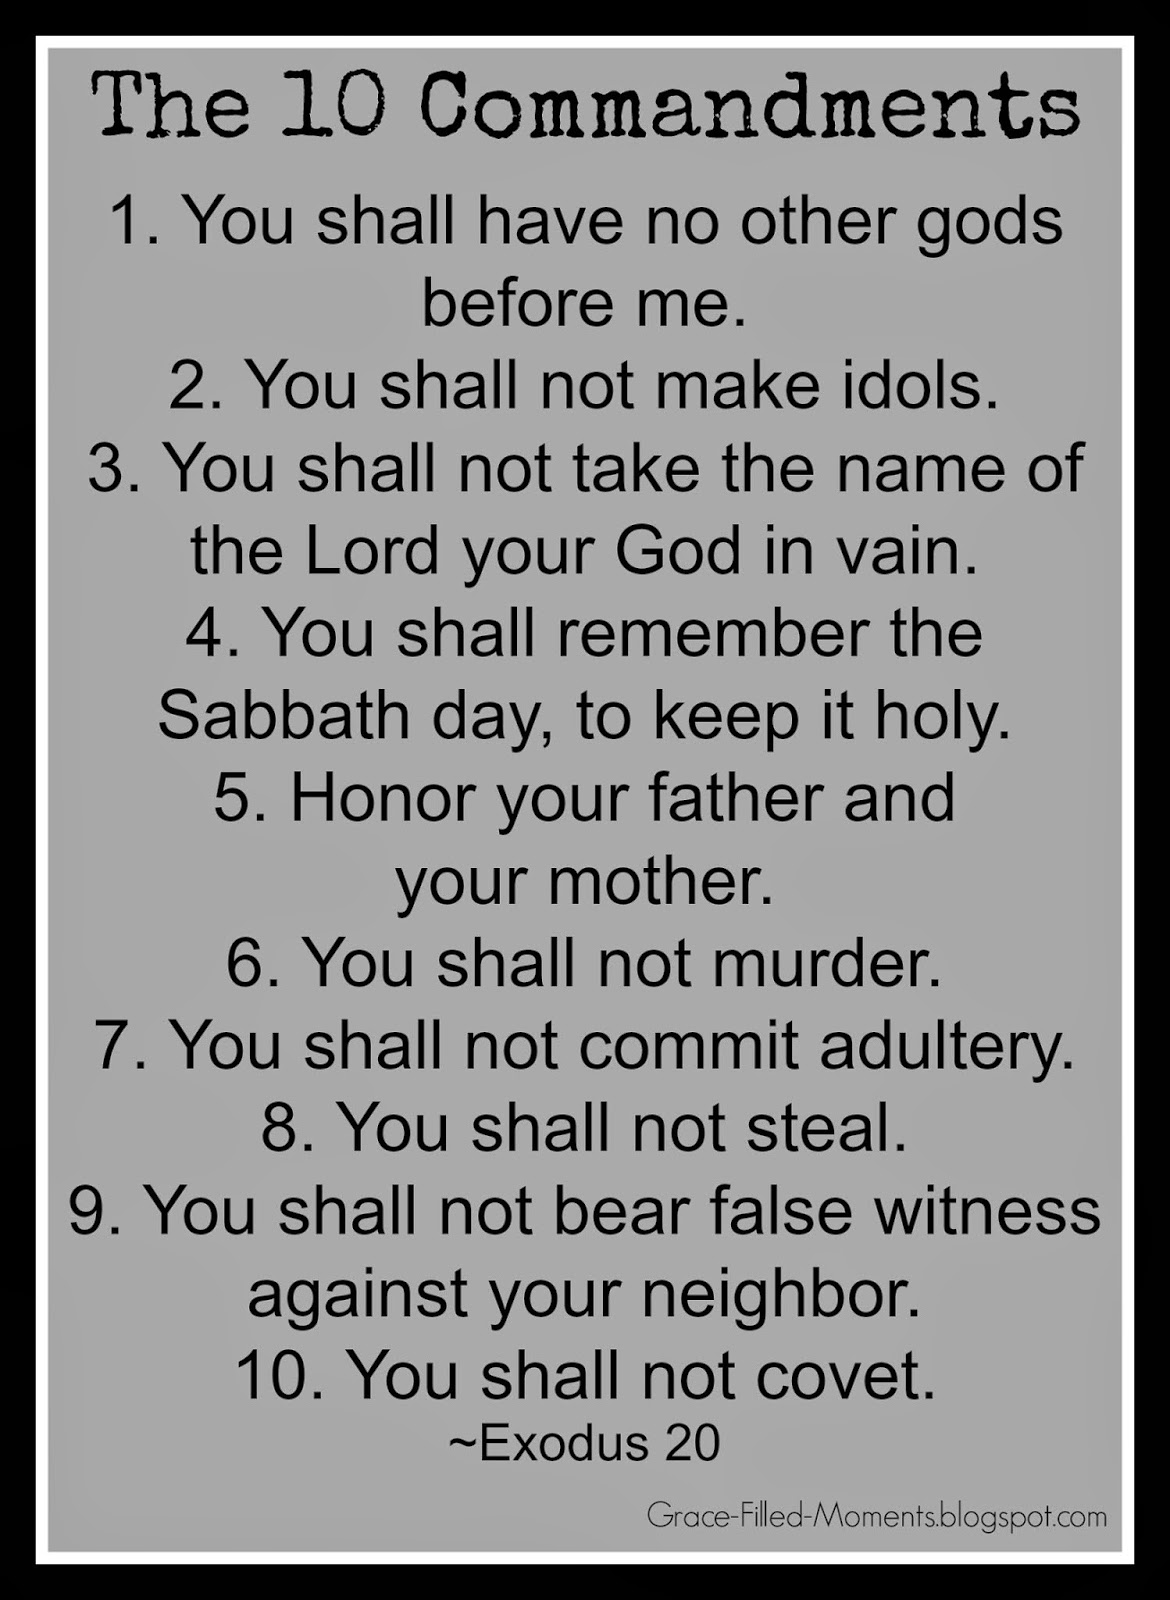 Grace Filled Moments Do The 10 Commandments Still Matter